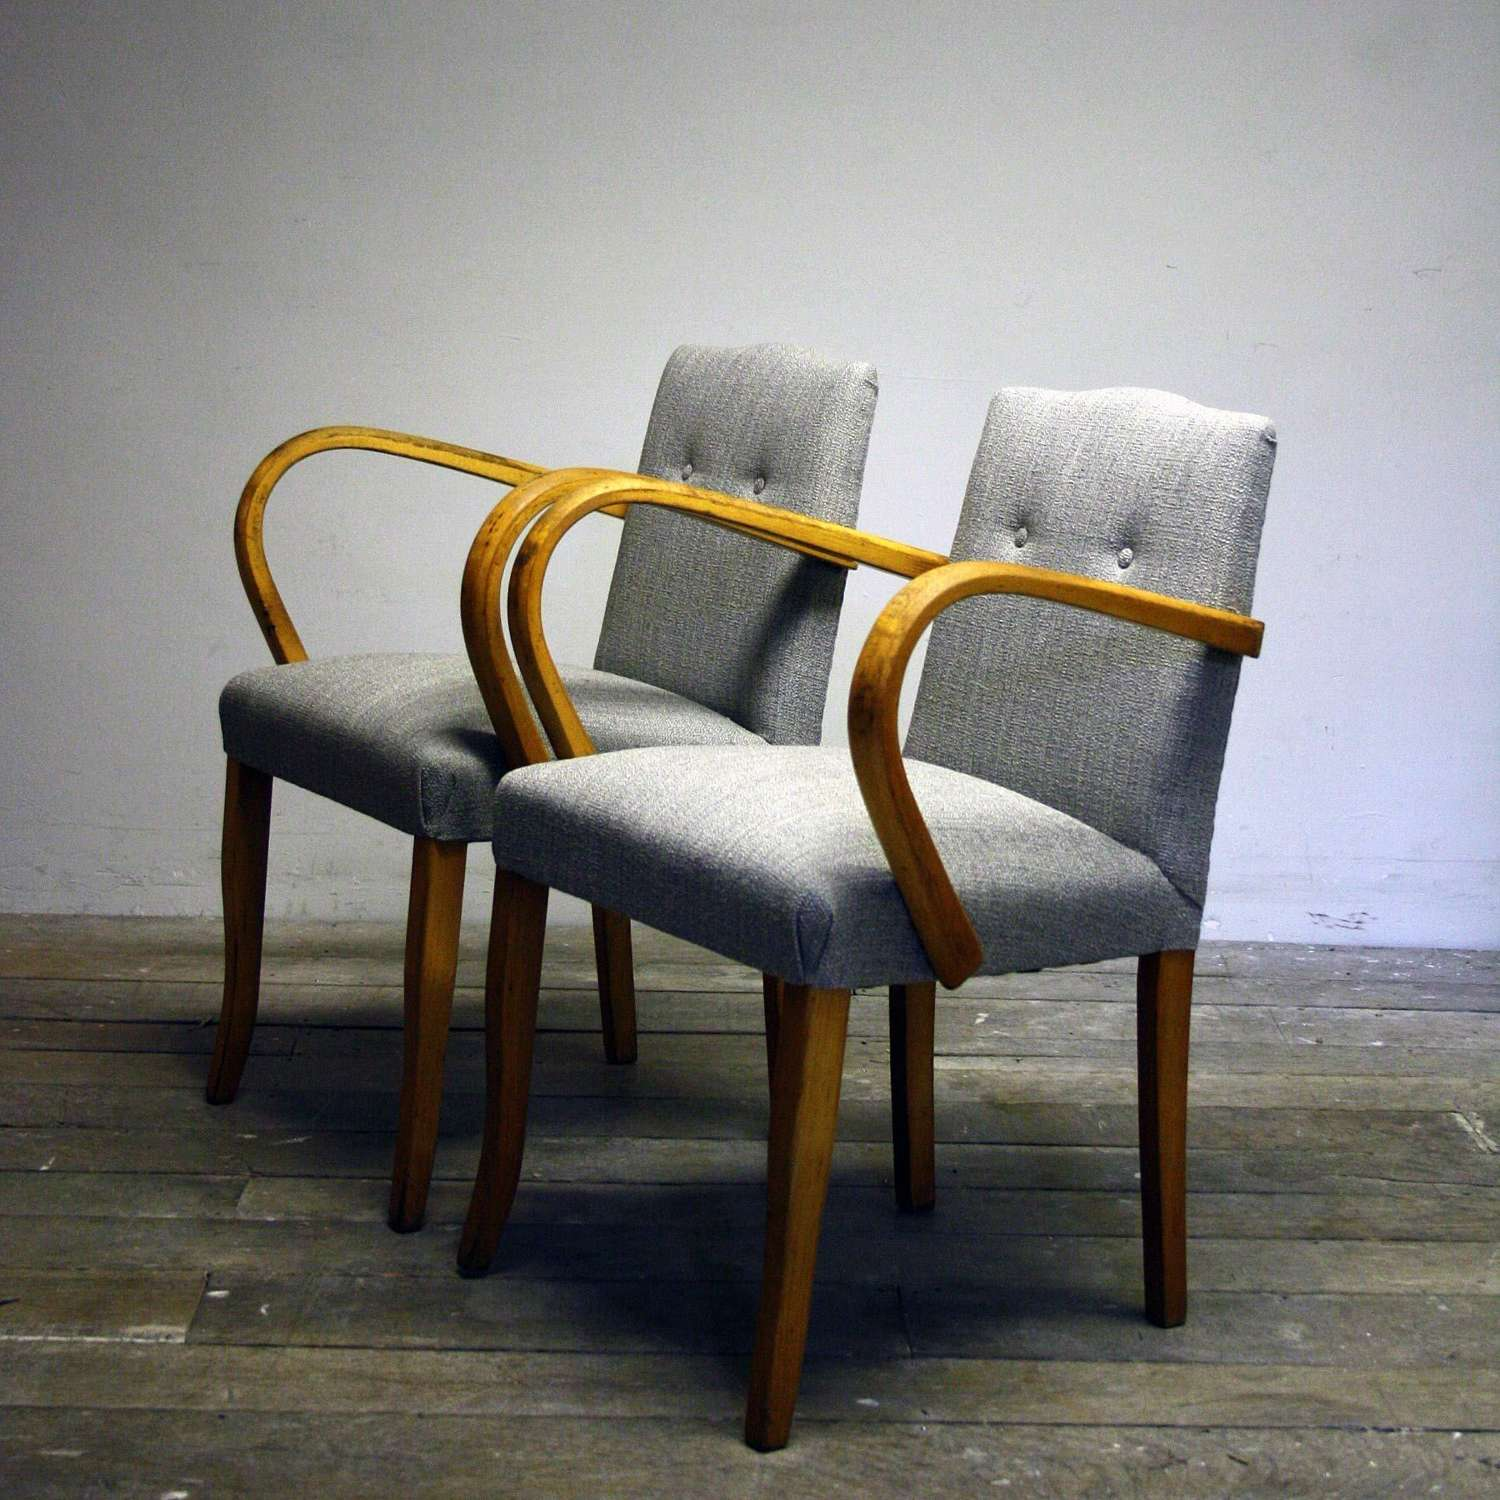 Re-upholstered 1930's Bridge Chairs